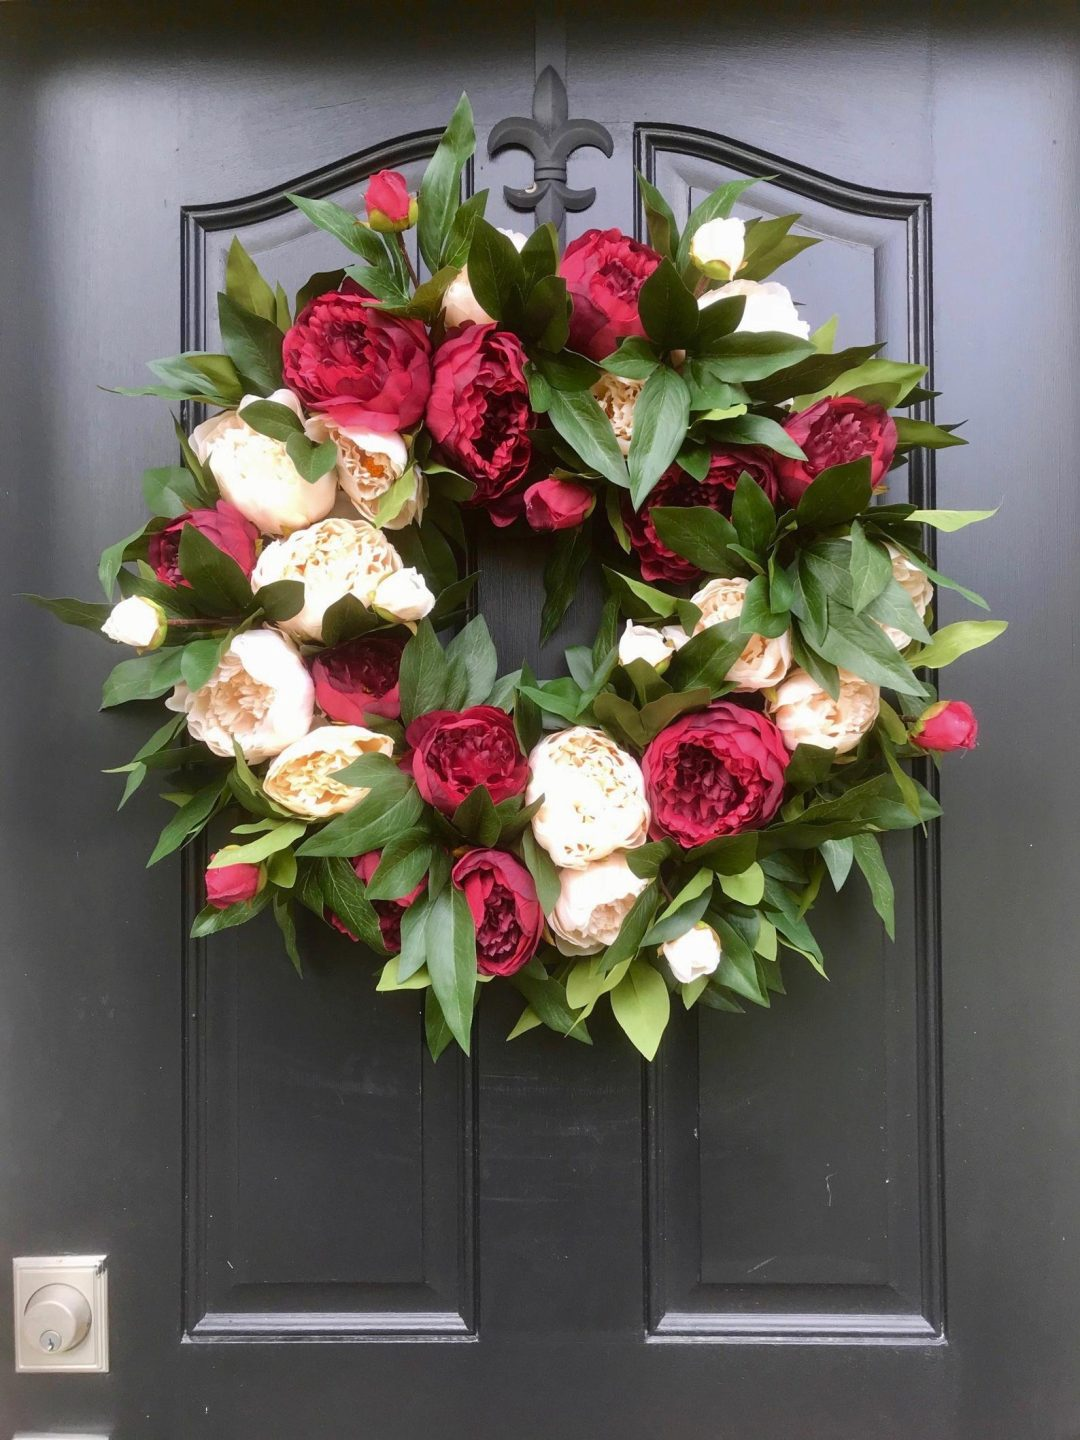 Best summer wreaths for front door, red and white peony wreath